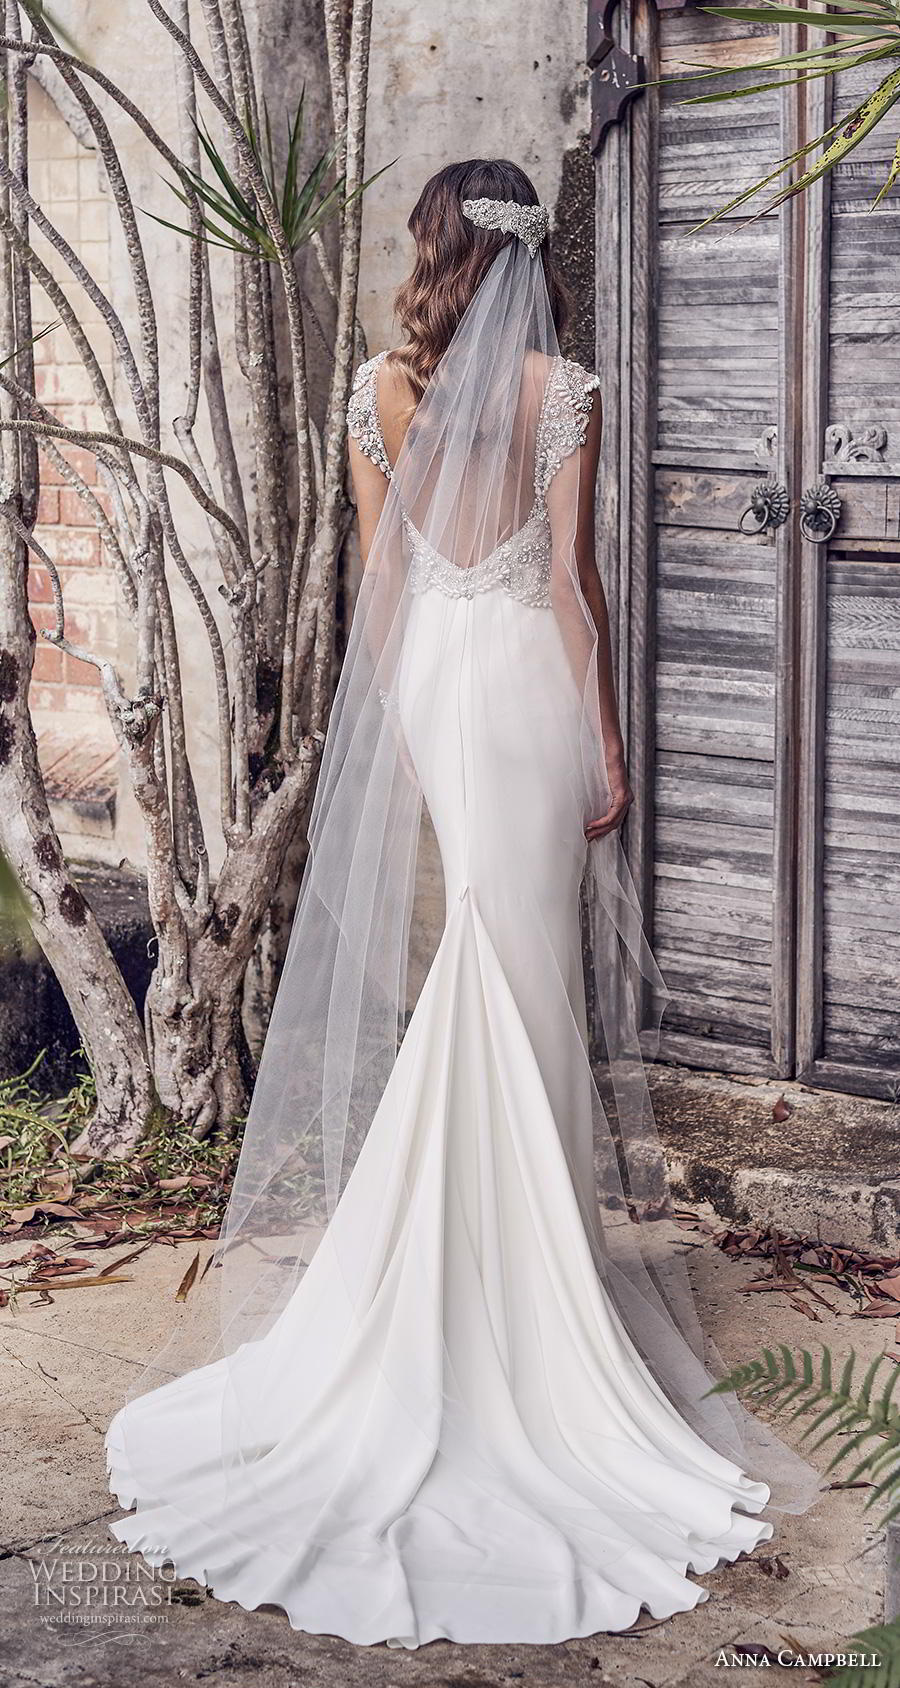 anna campbell 2019 bridal cap sleeves v neck heavily embellished bodice glitzy romantic sheath wedding dress backless scoop back chapel train (3) bv